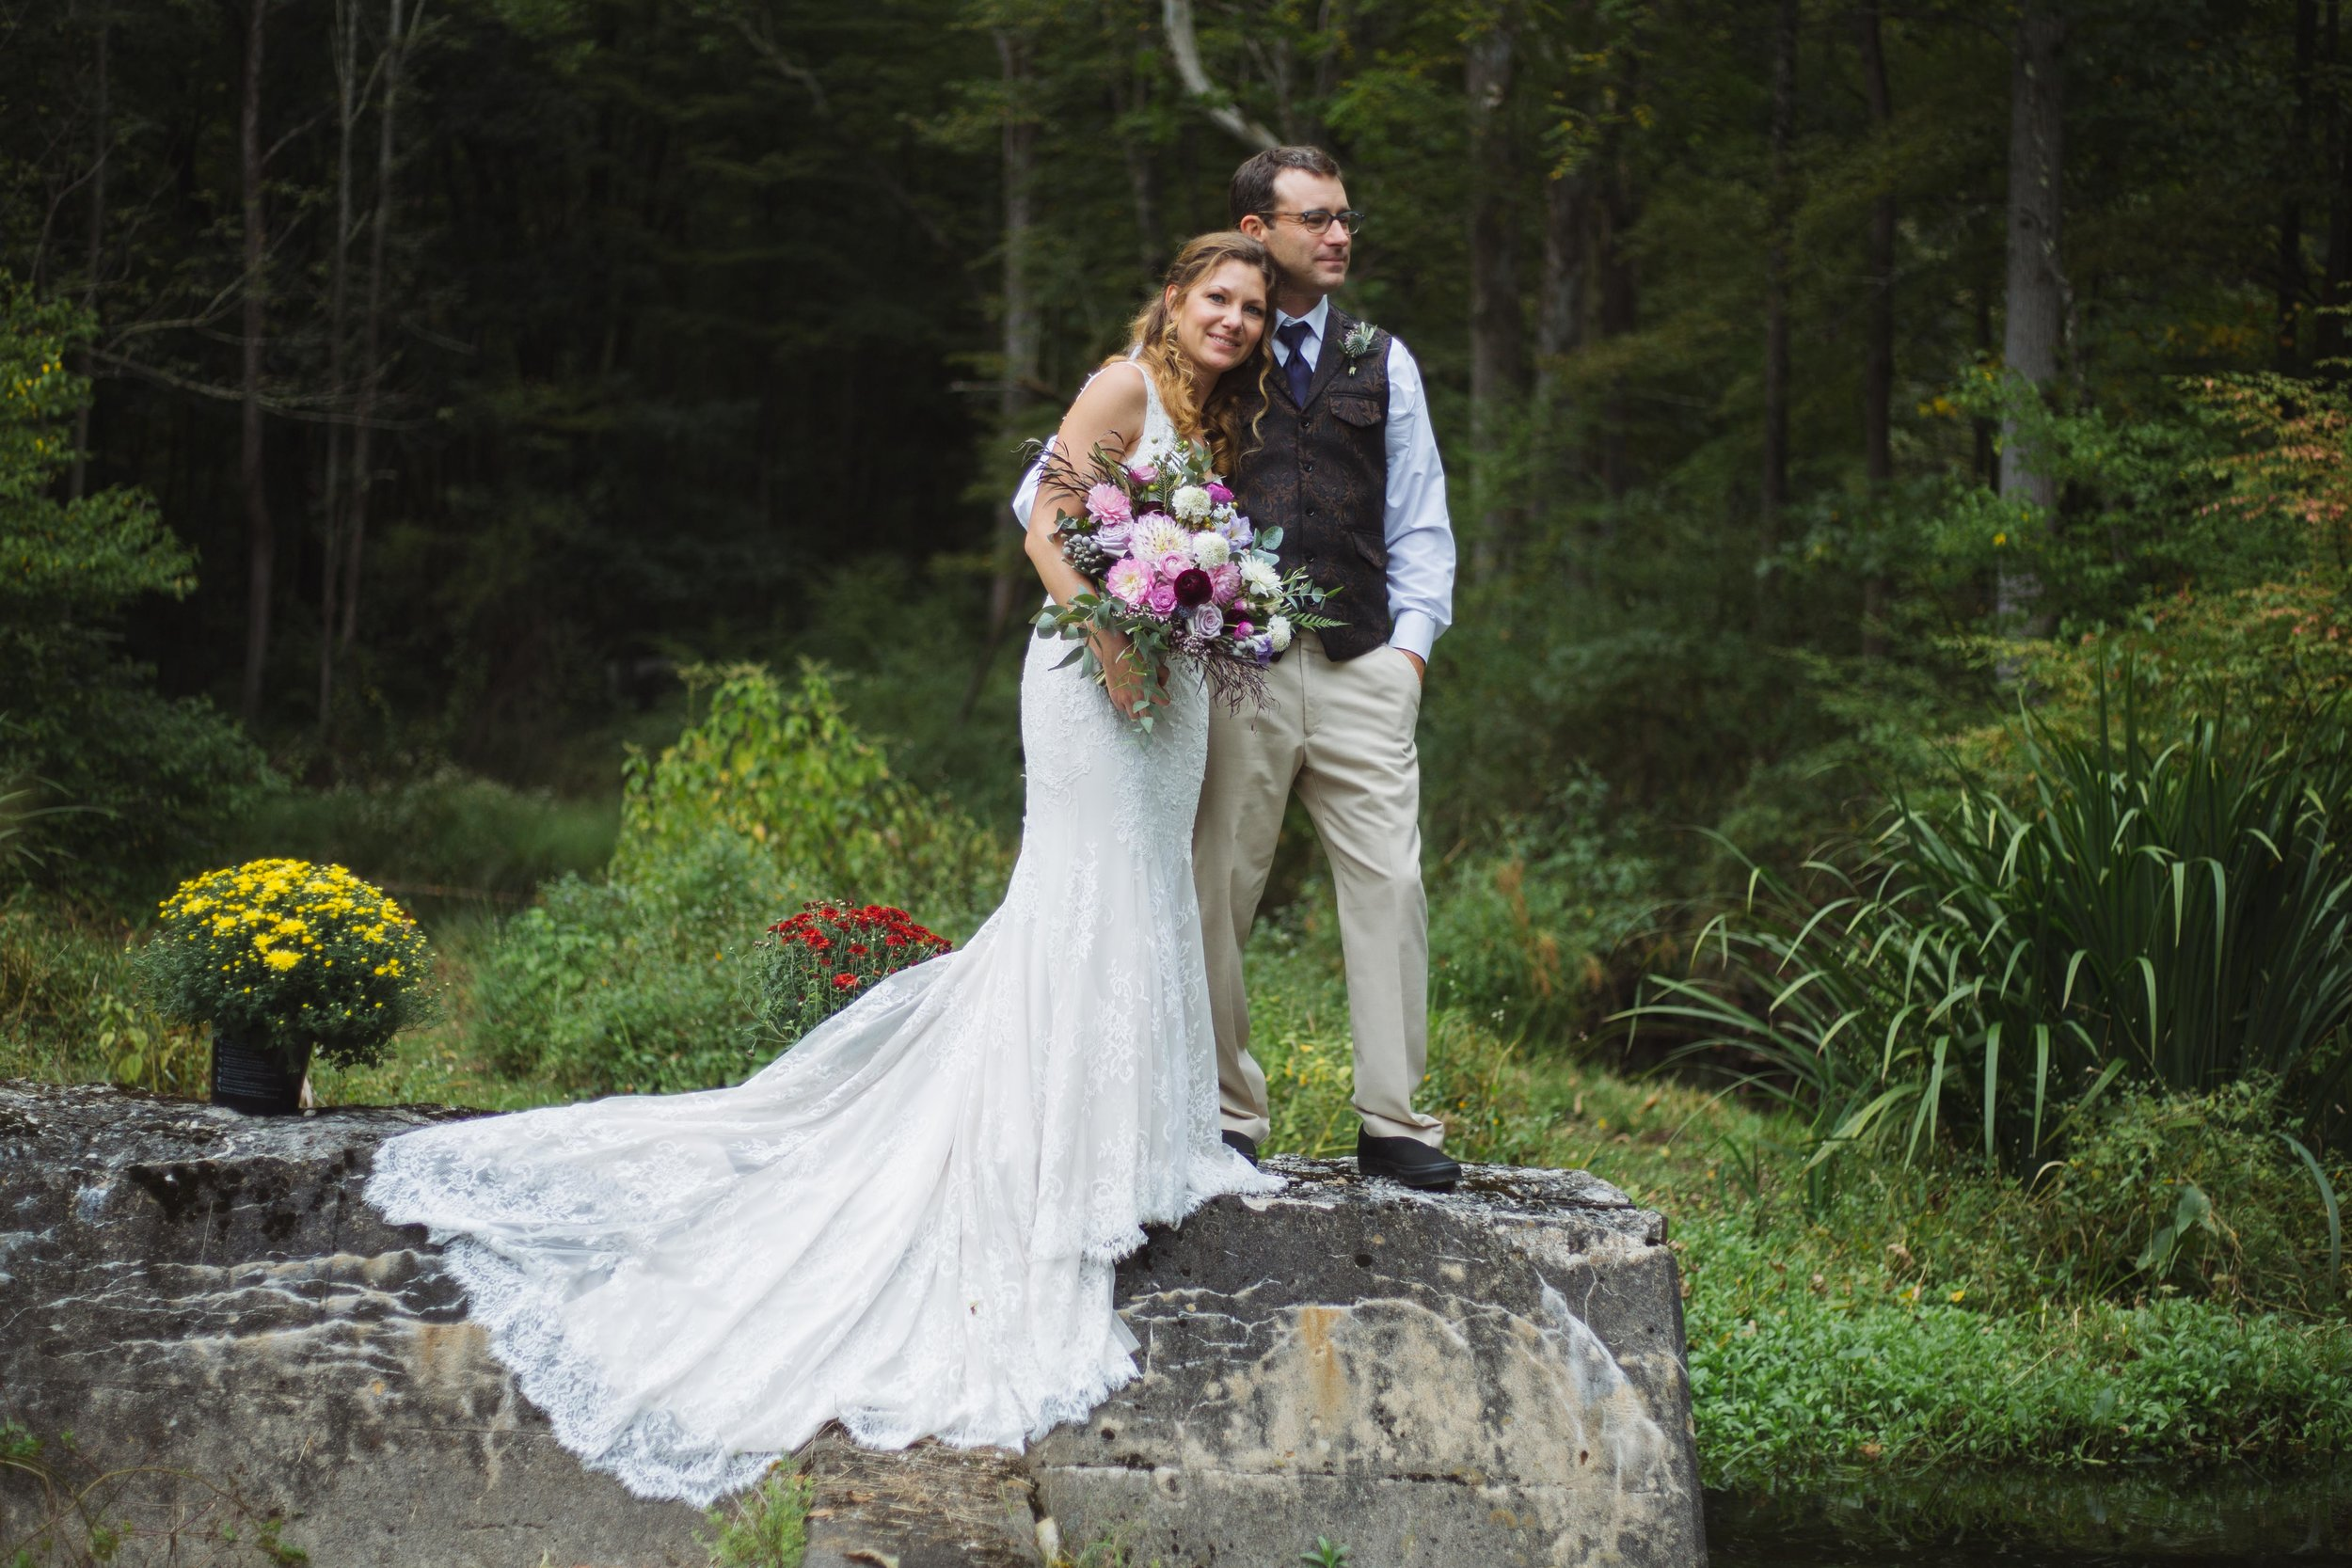 Alysa and Sean's Magical Stillwater Wedding in the Woods-23.jpg